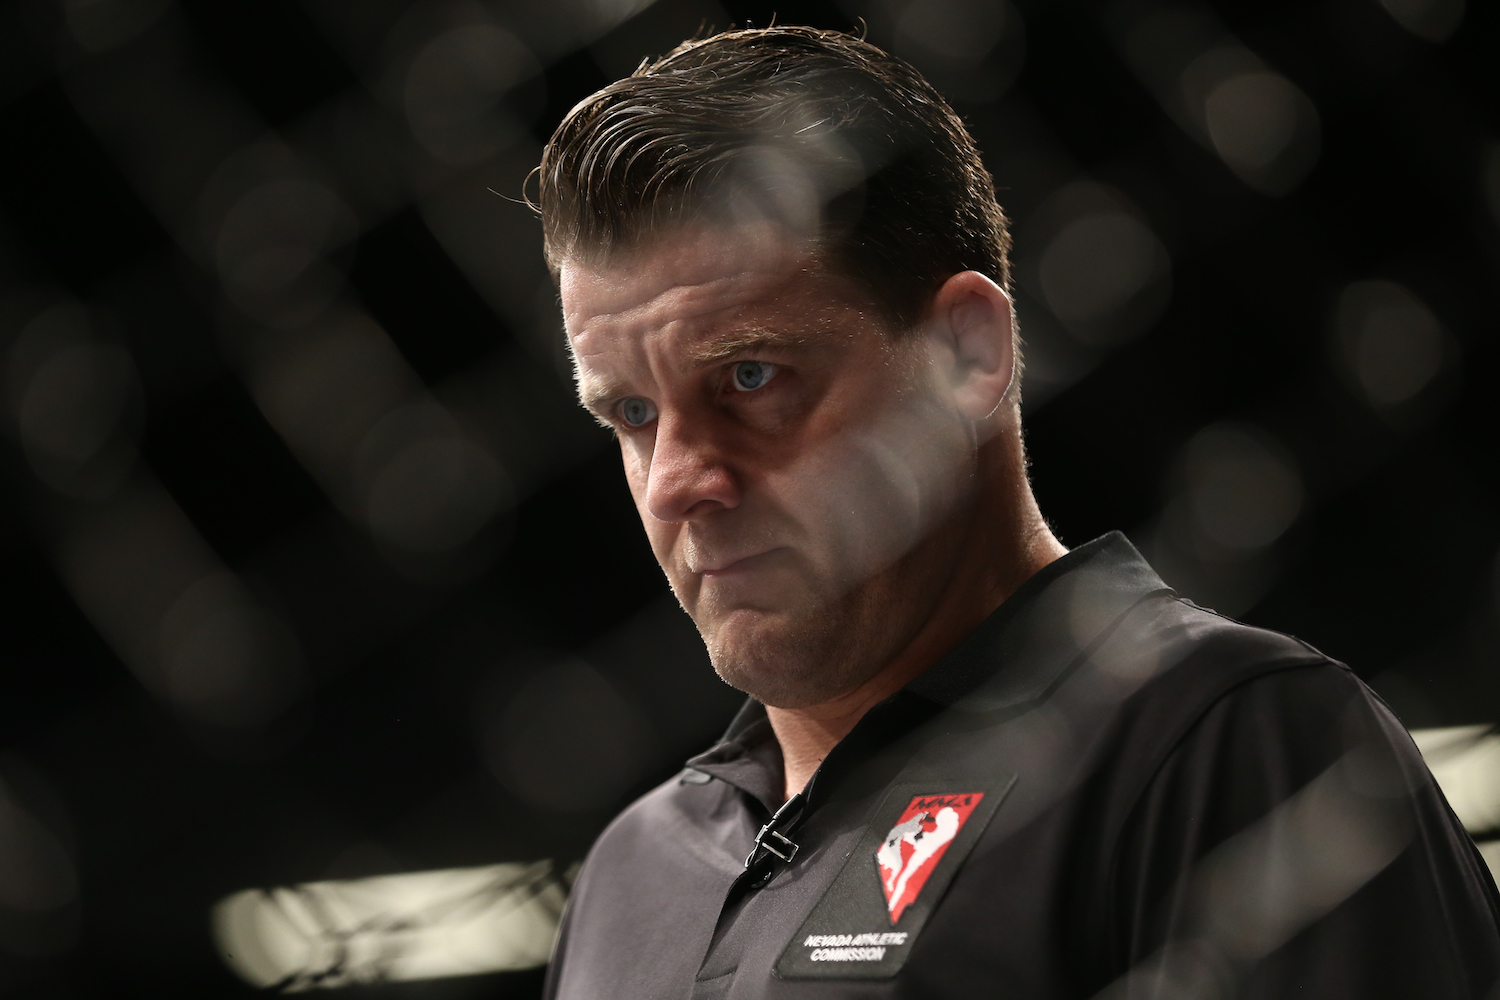 Veteran UFC Referee Marc Goddard Attacked by Fighter at Conclusion of Bout